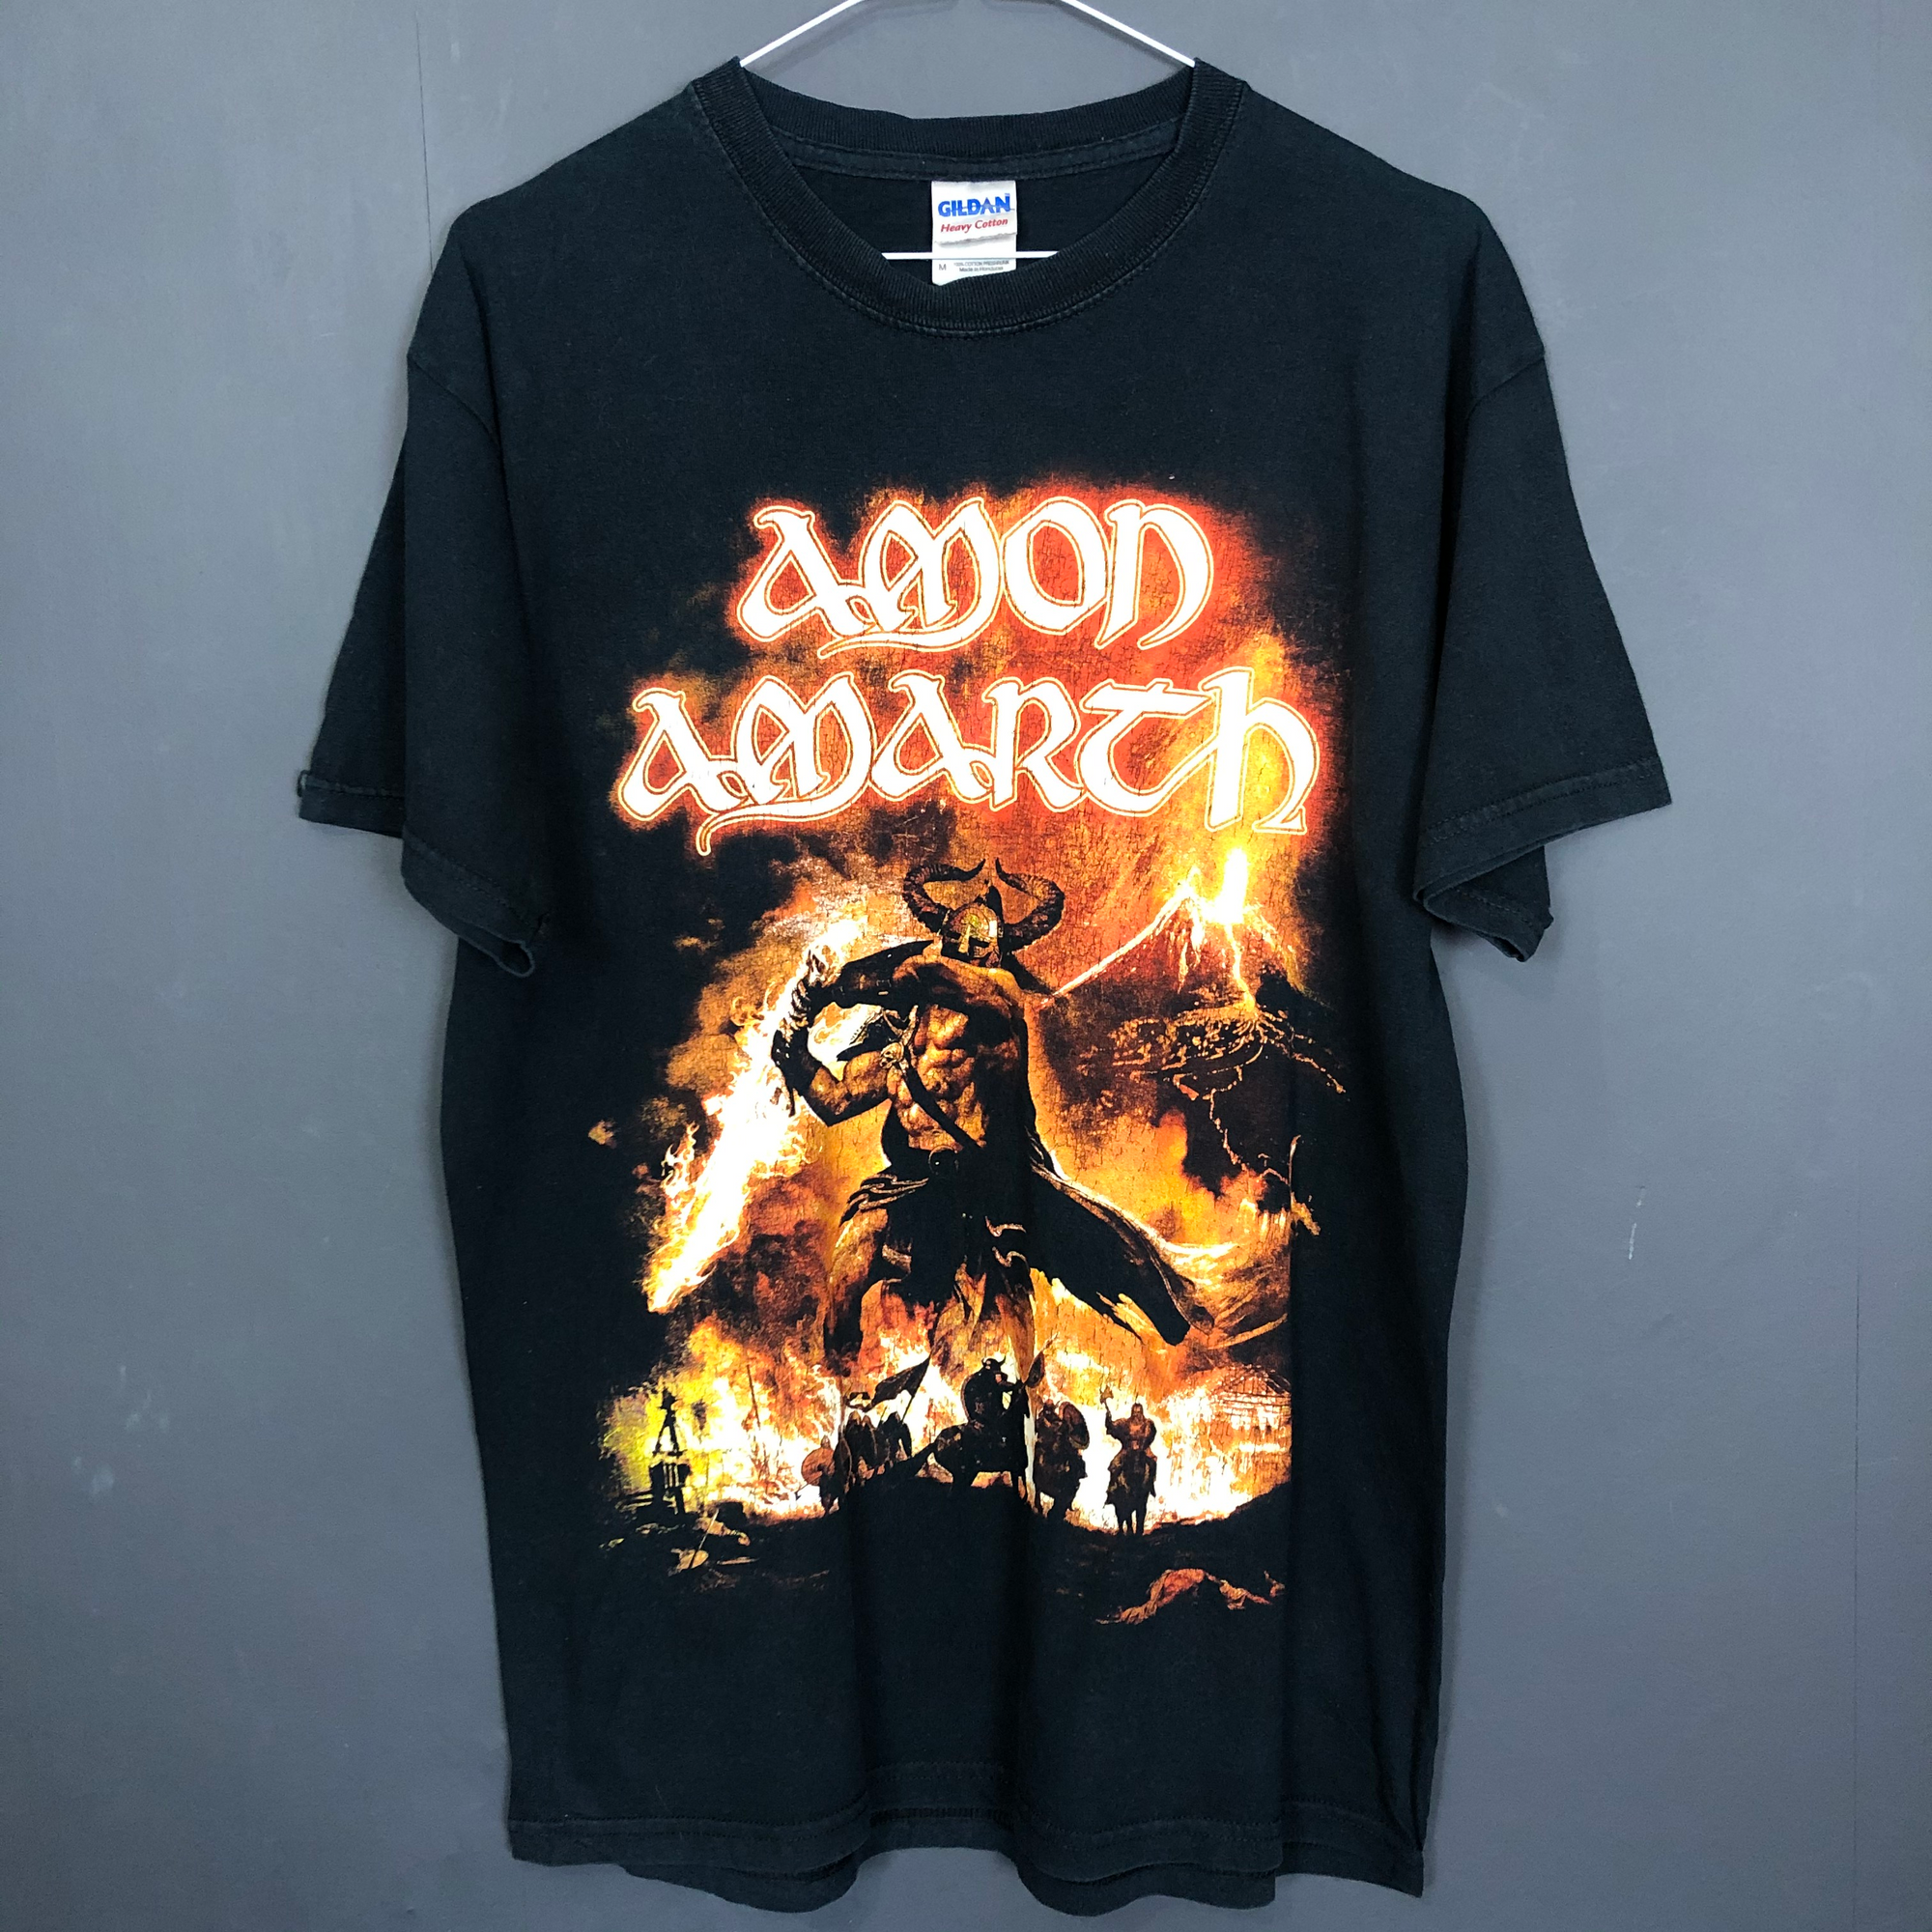 Vintage 'Amon Amarth' Rock Band / Metal Tee - Medium - Vintique Clothing